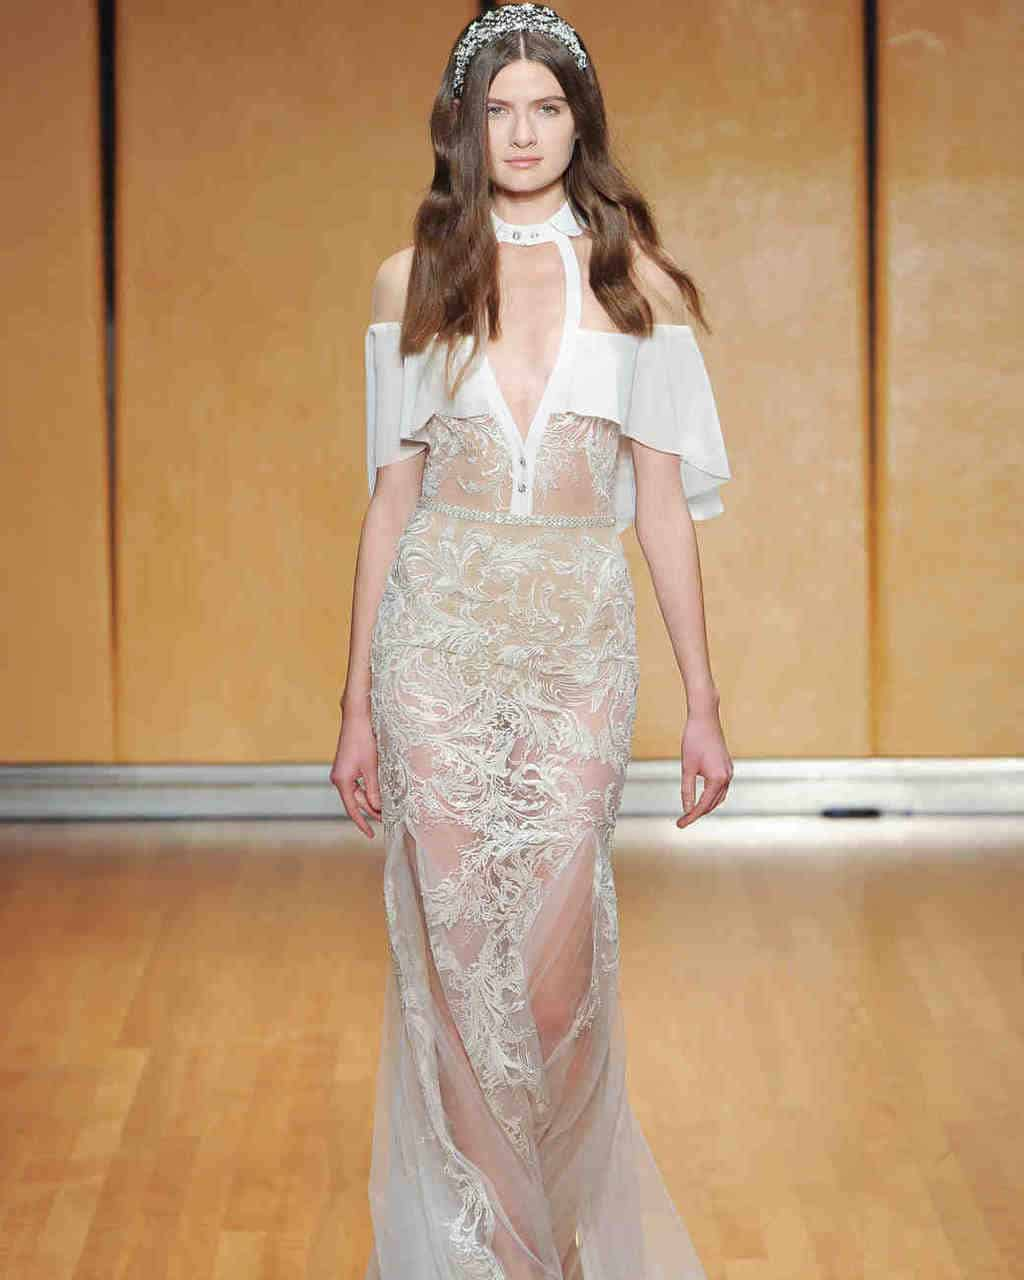 inbal-dror-wedding-dress-fall2017-6203351-025_vert